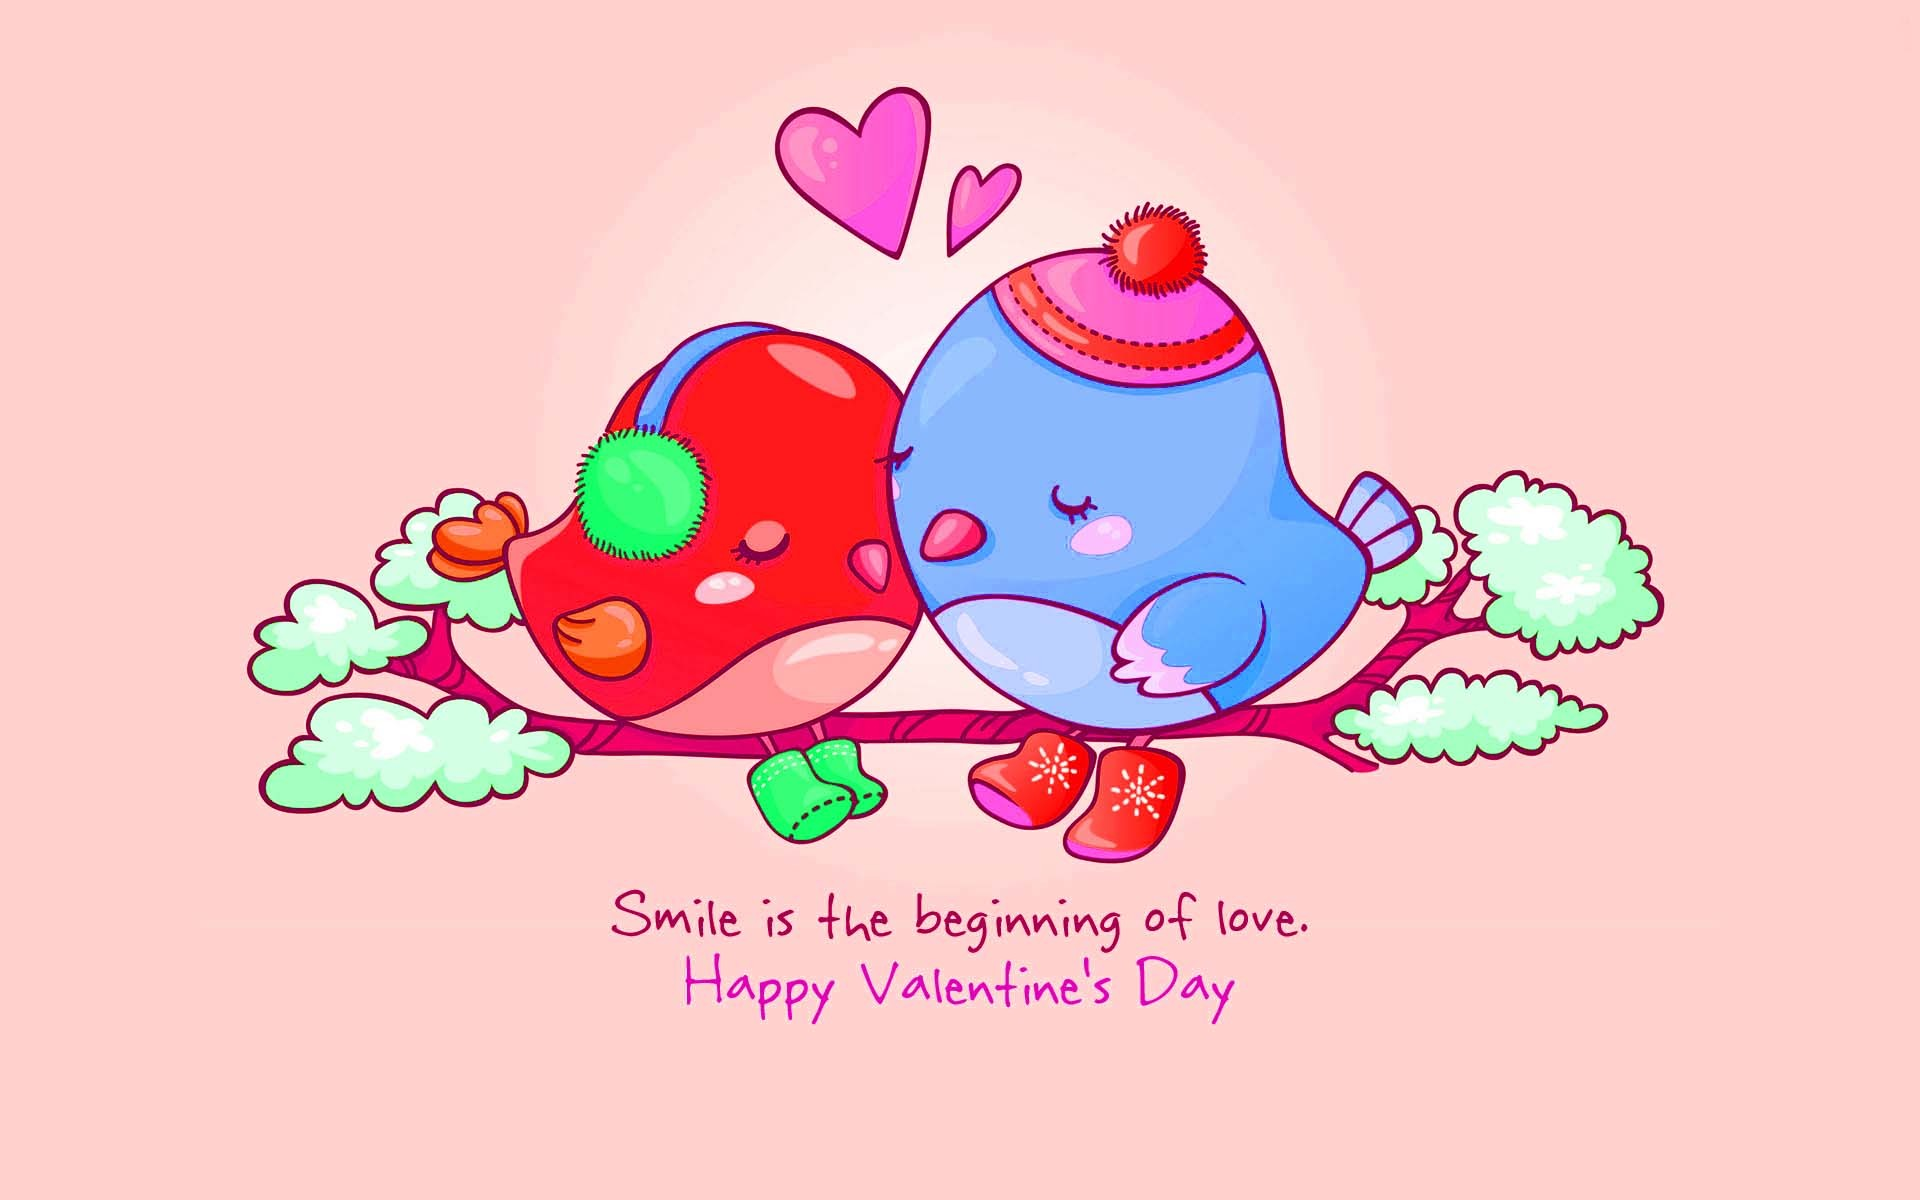 Cute Valentines Day Wallpapers ·①